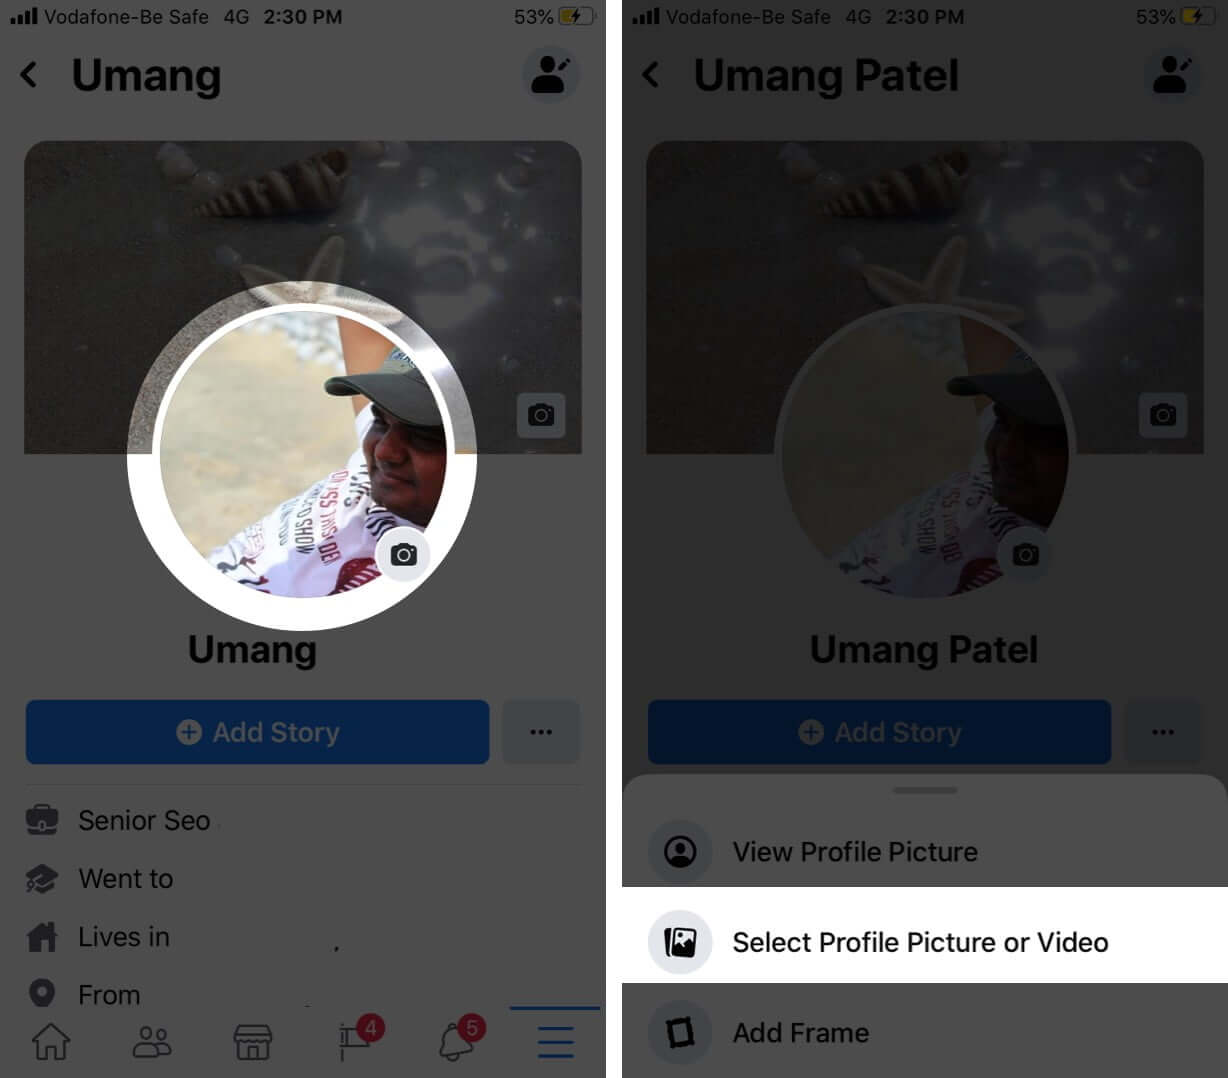 Select Profile Picture and Video in Facebook Profile on iPhone